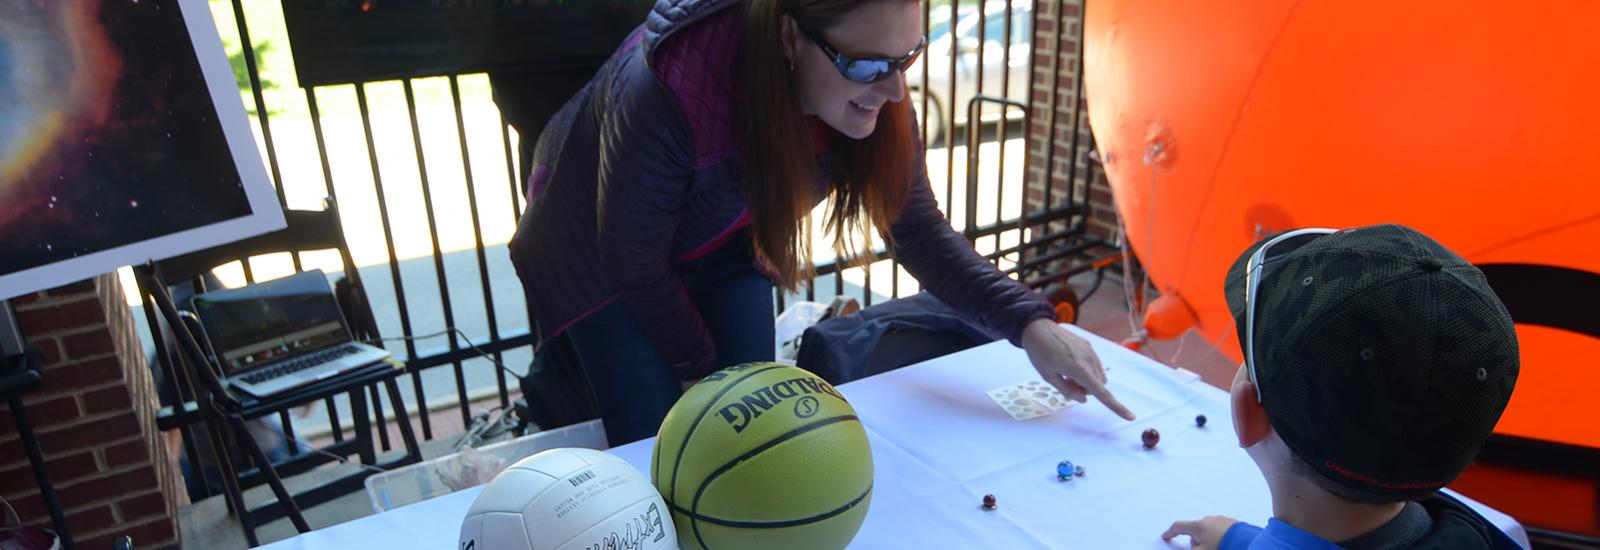 OSU Astronomers for Space Day at Huntington Park